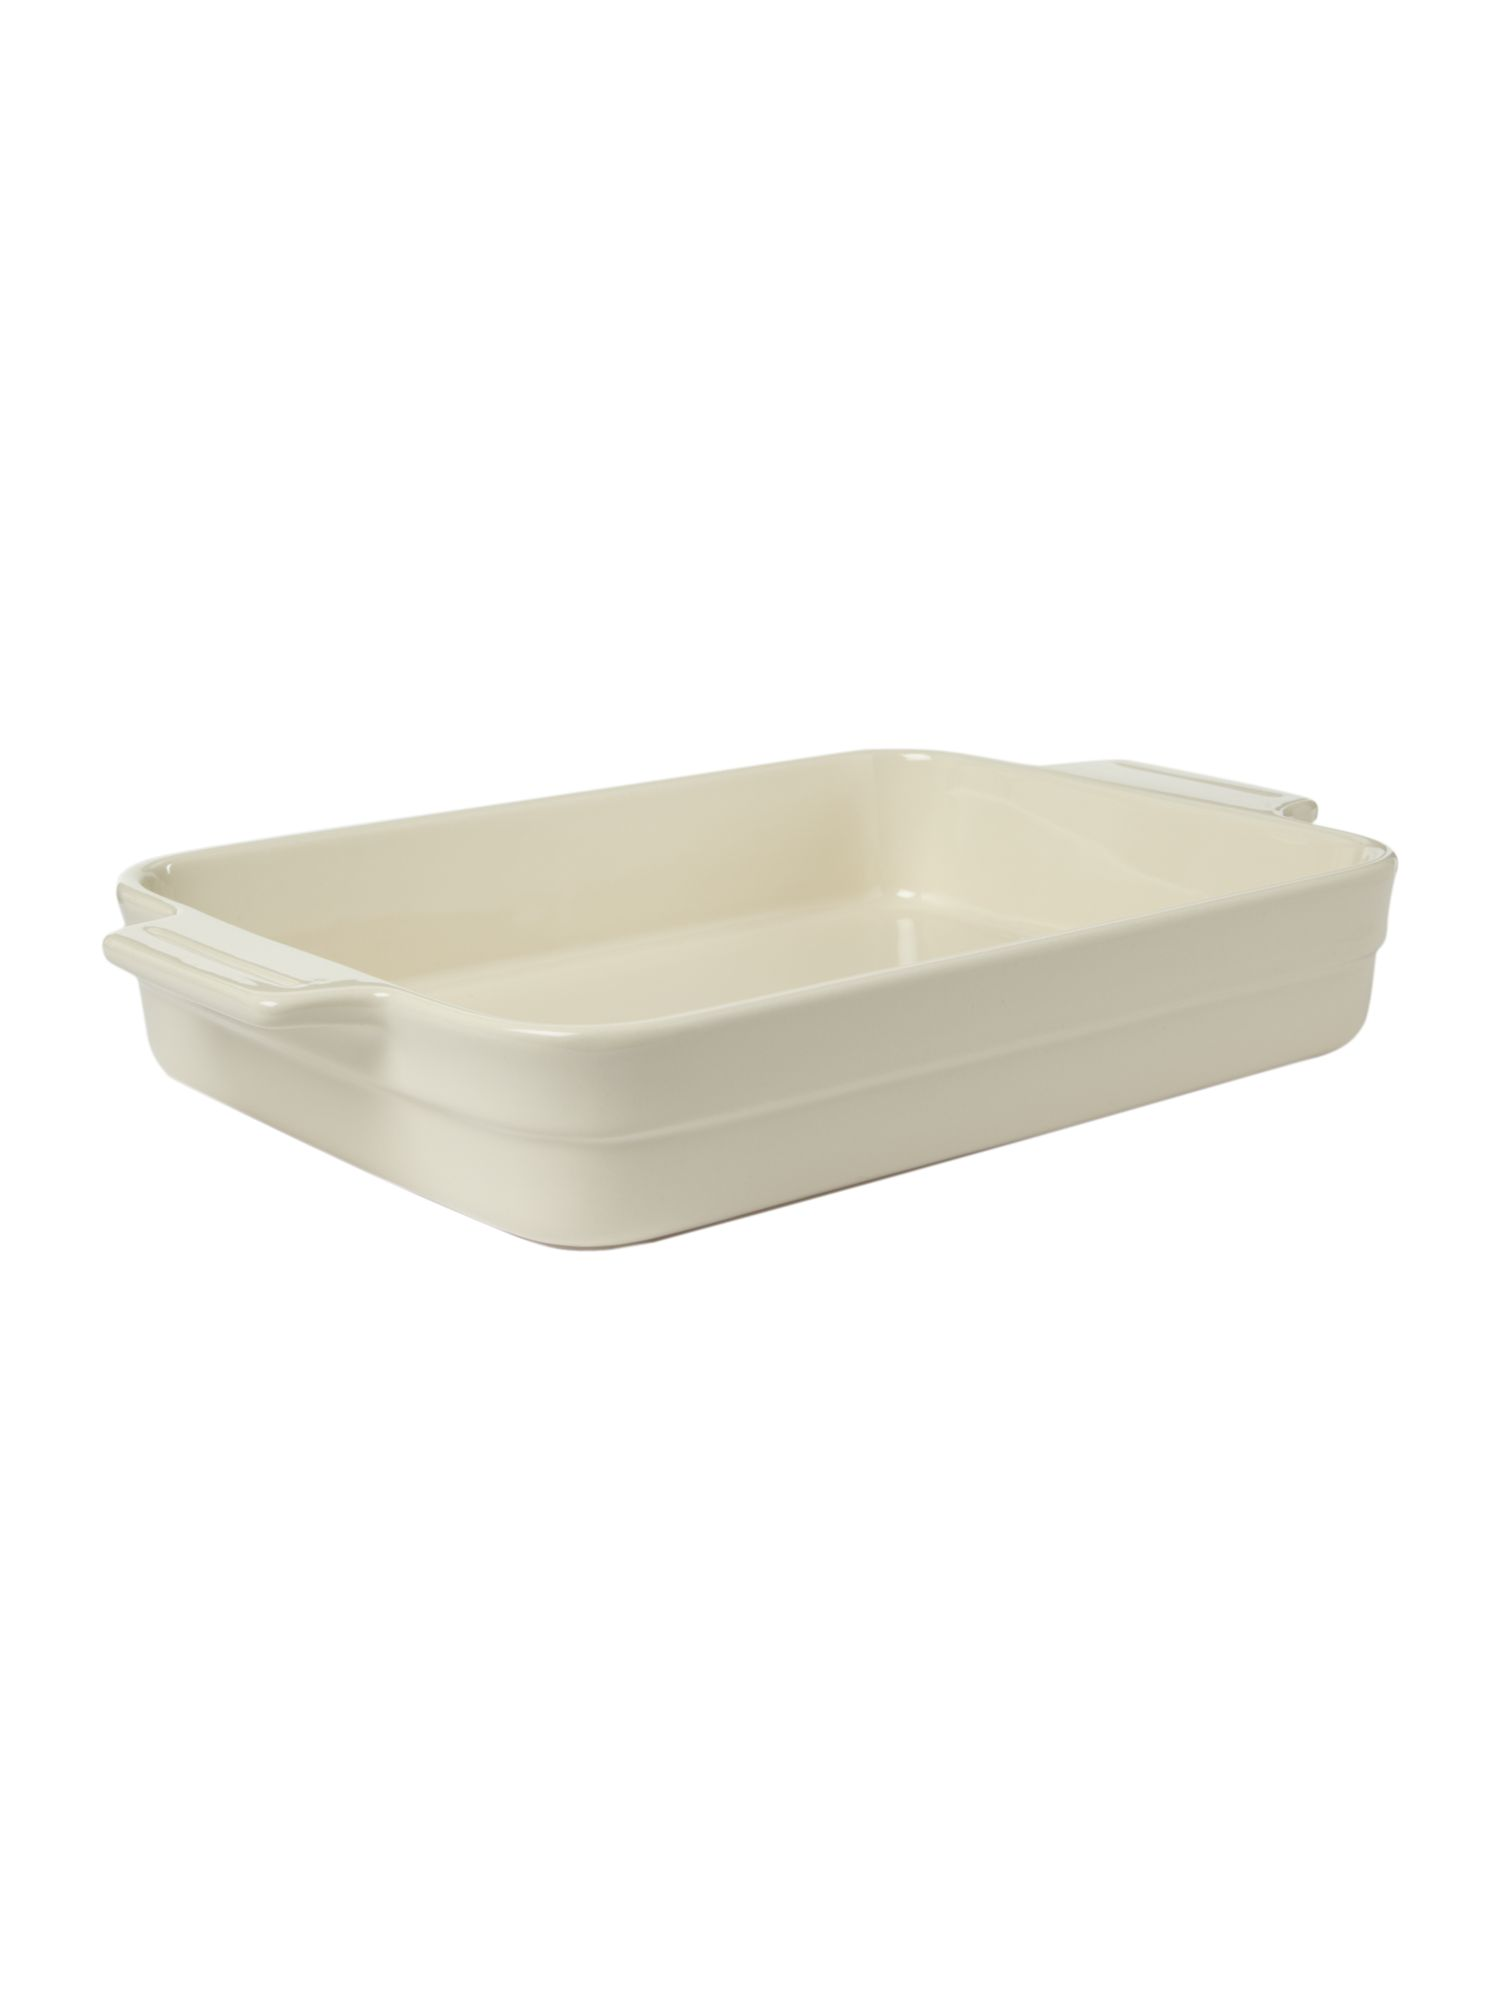 Maison rectangular baker, cream